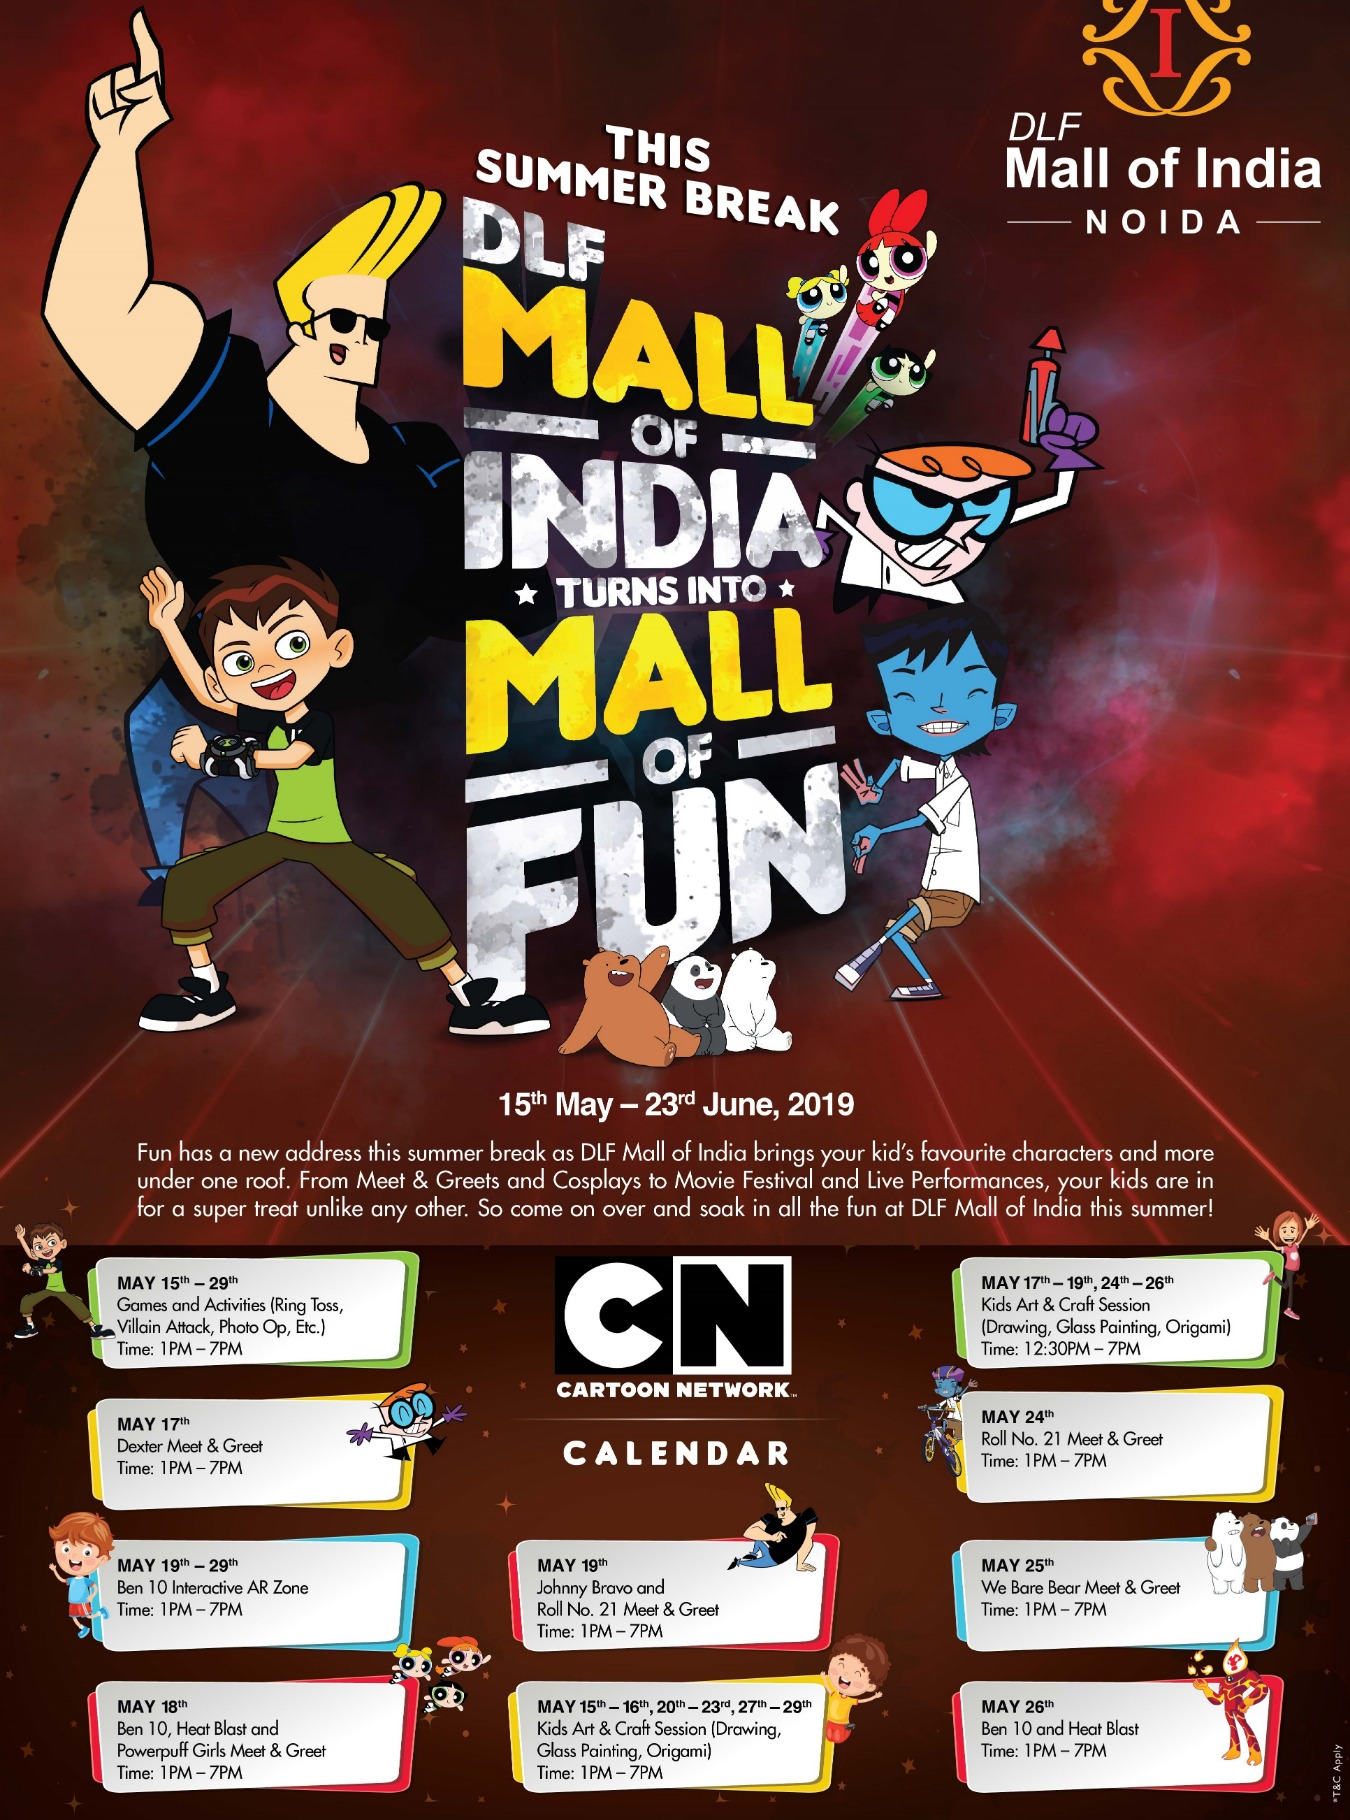 It is Hero Time with Cartoon Network at DLF Mall of India